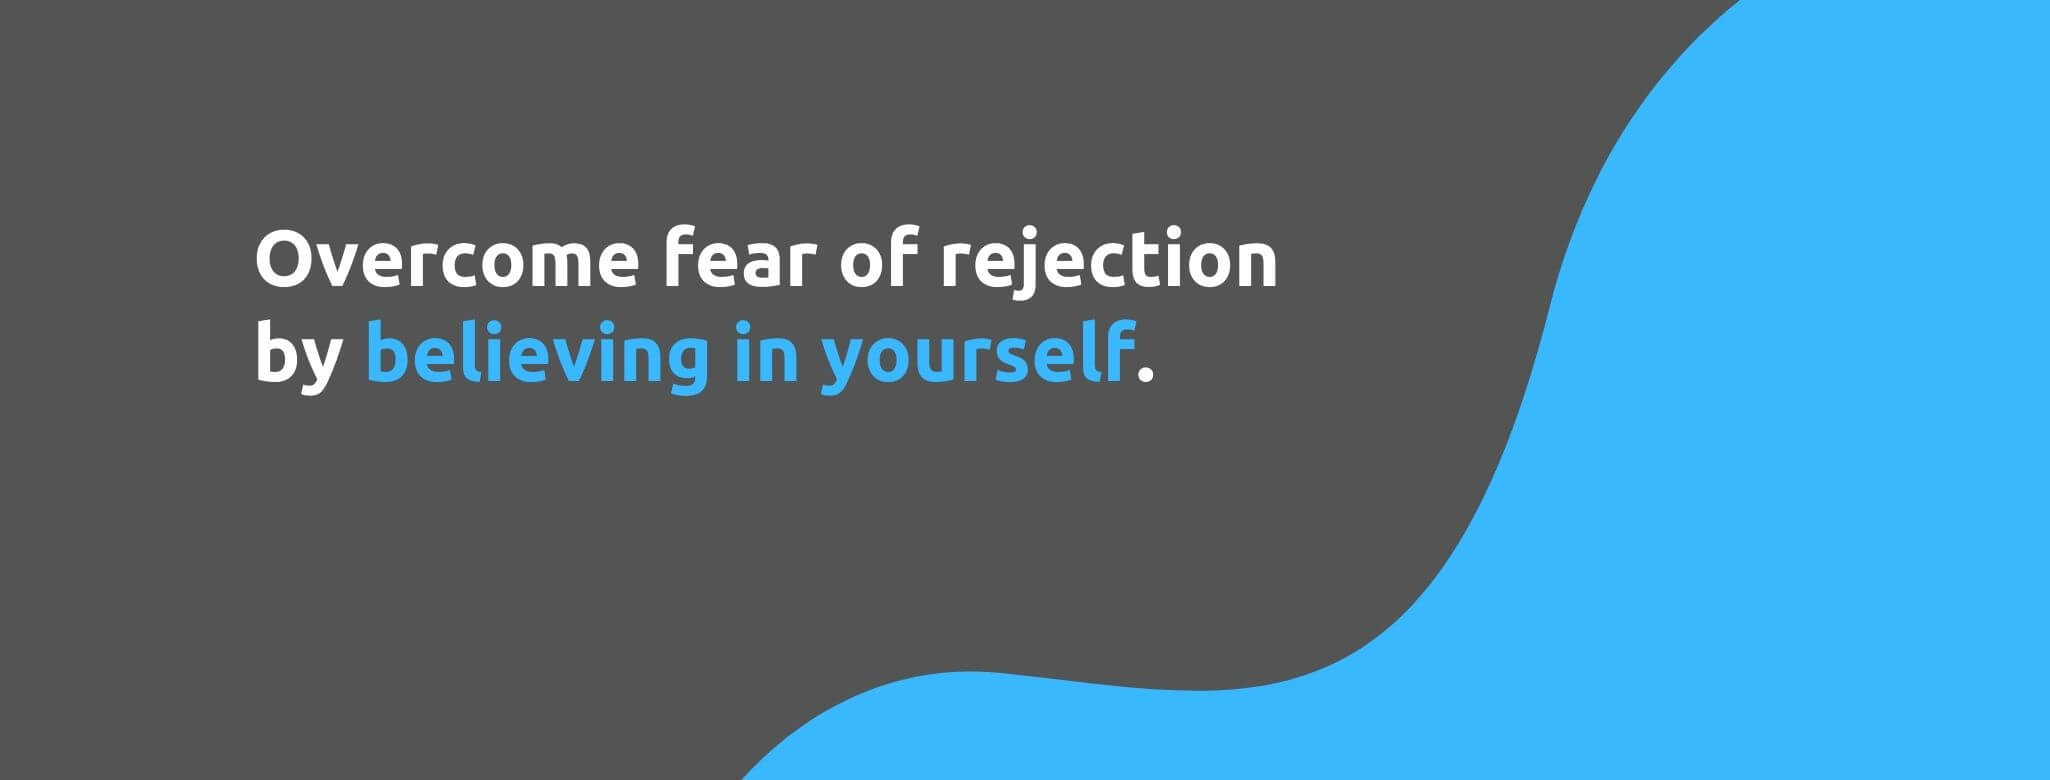 Believe in Yourself - 19 Ways to Conquer Fear of Rejection in Sales - Replyco Helpdesk Software for eCommerce